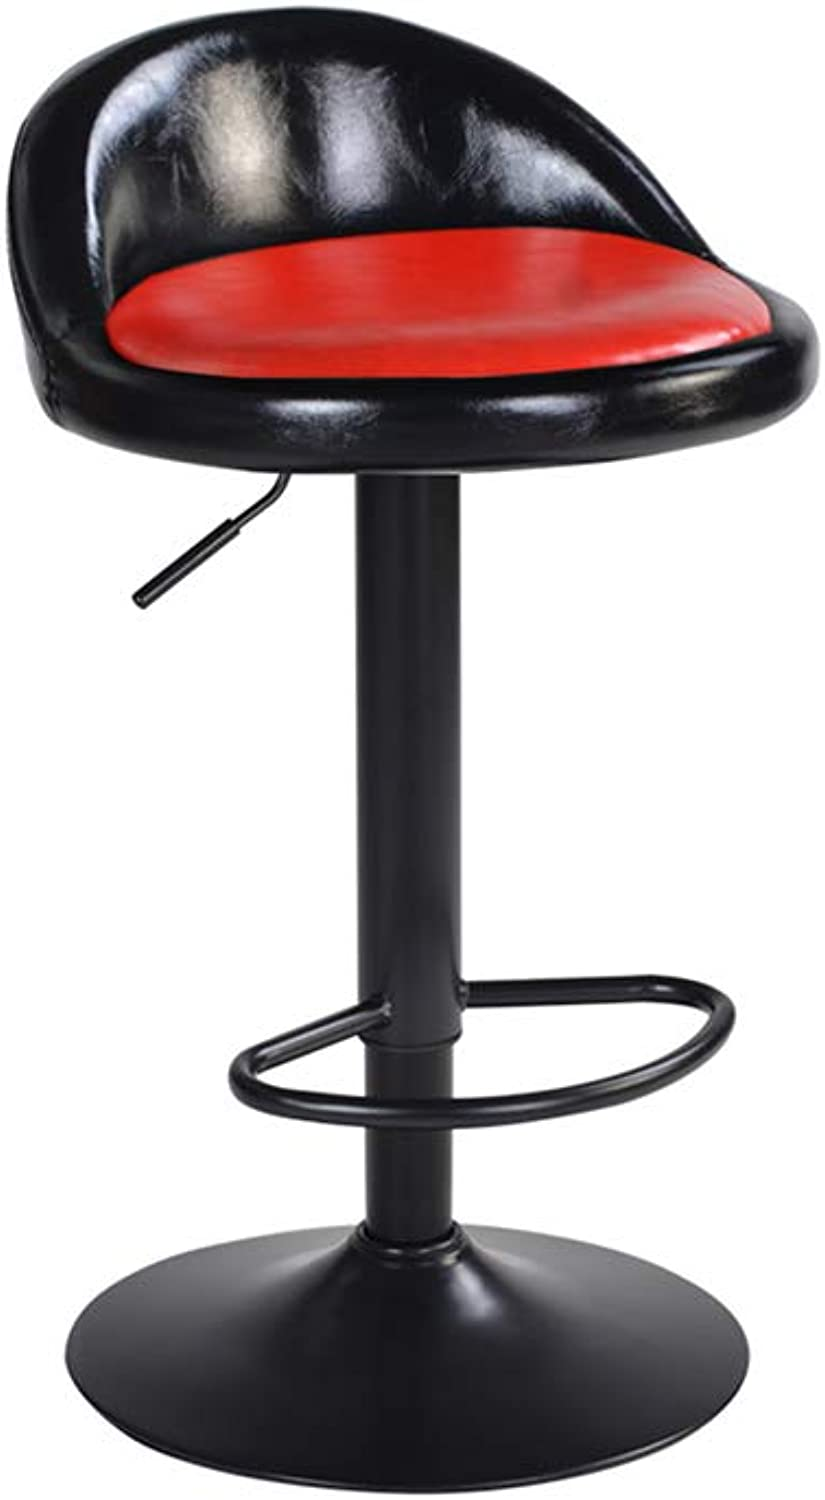 QY Y-38 Bar Chair Chair Lift Barstool Backrest Chair Household redatable Modern Minimalist Multi-color Optional